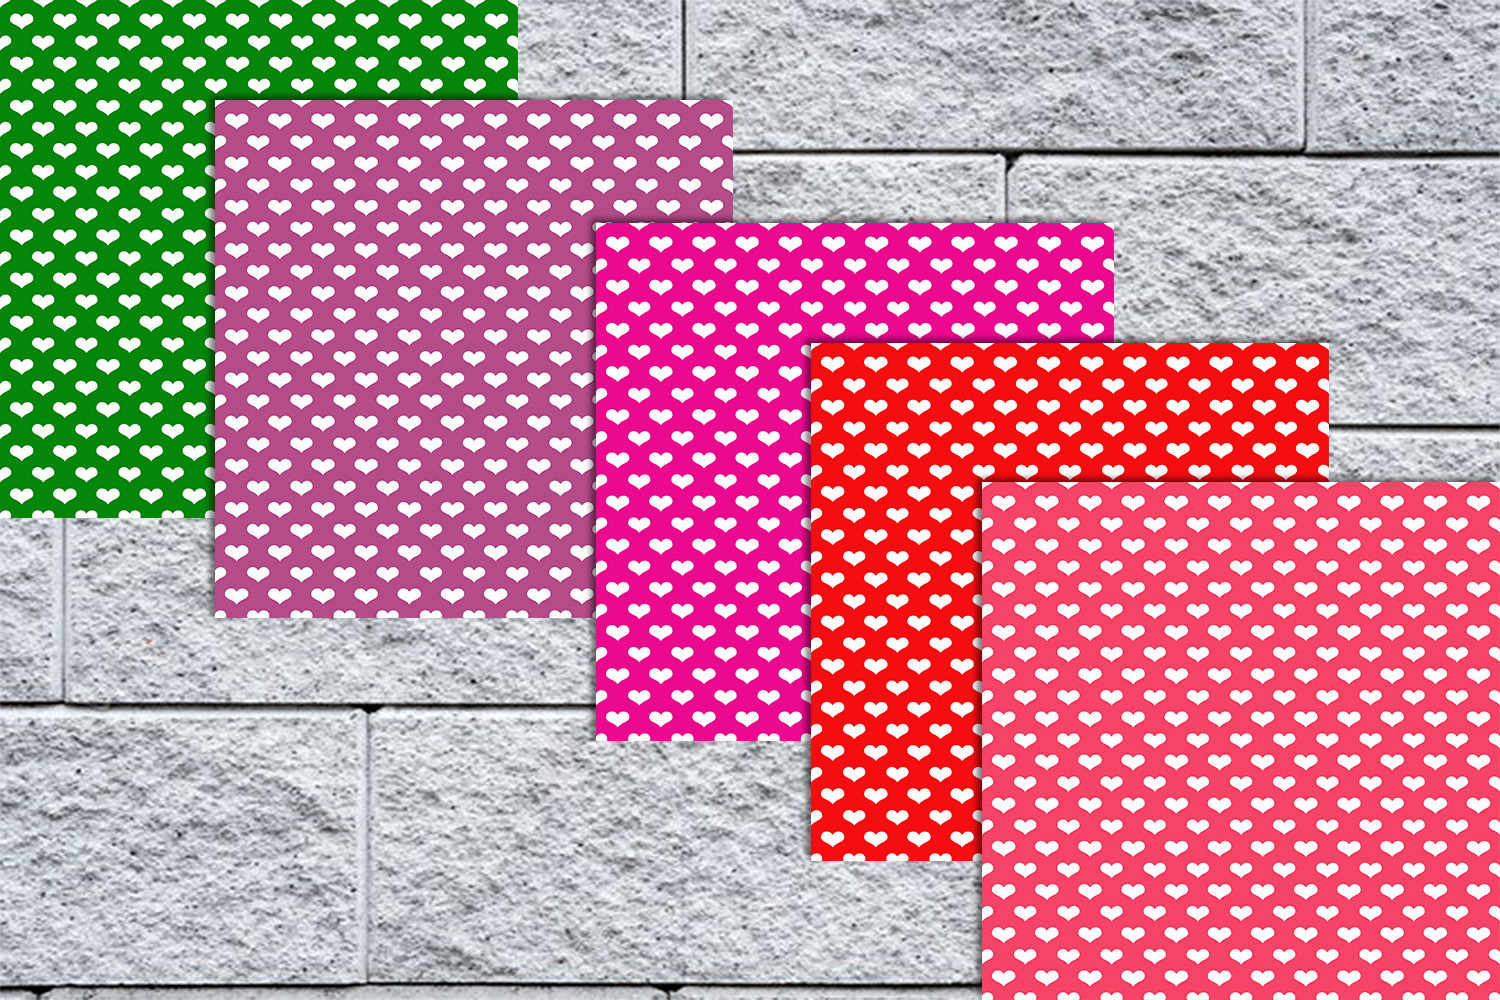 20 Color Heart Papers,Heart Background,Heart Wallpaper, SALE example image 3